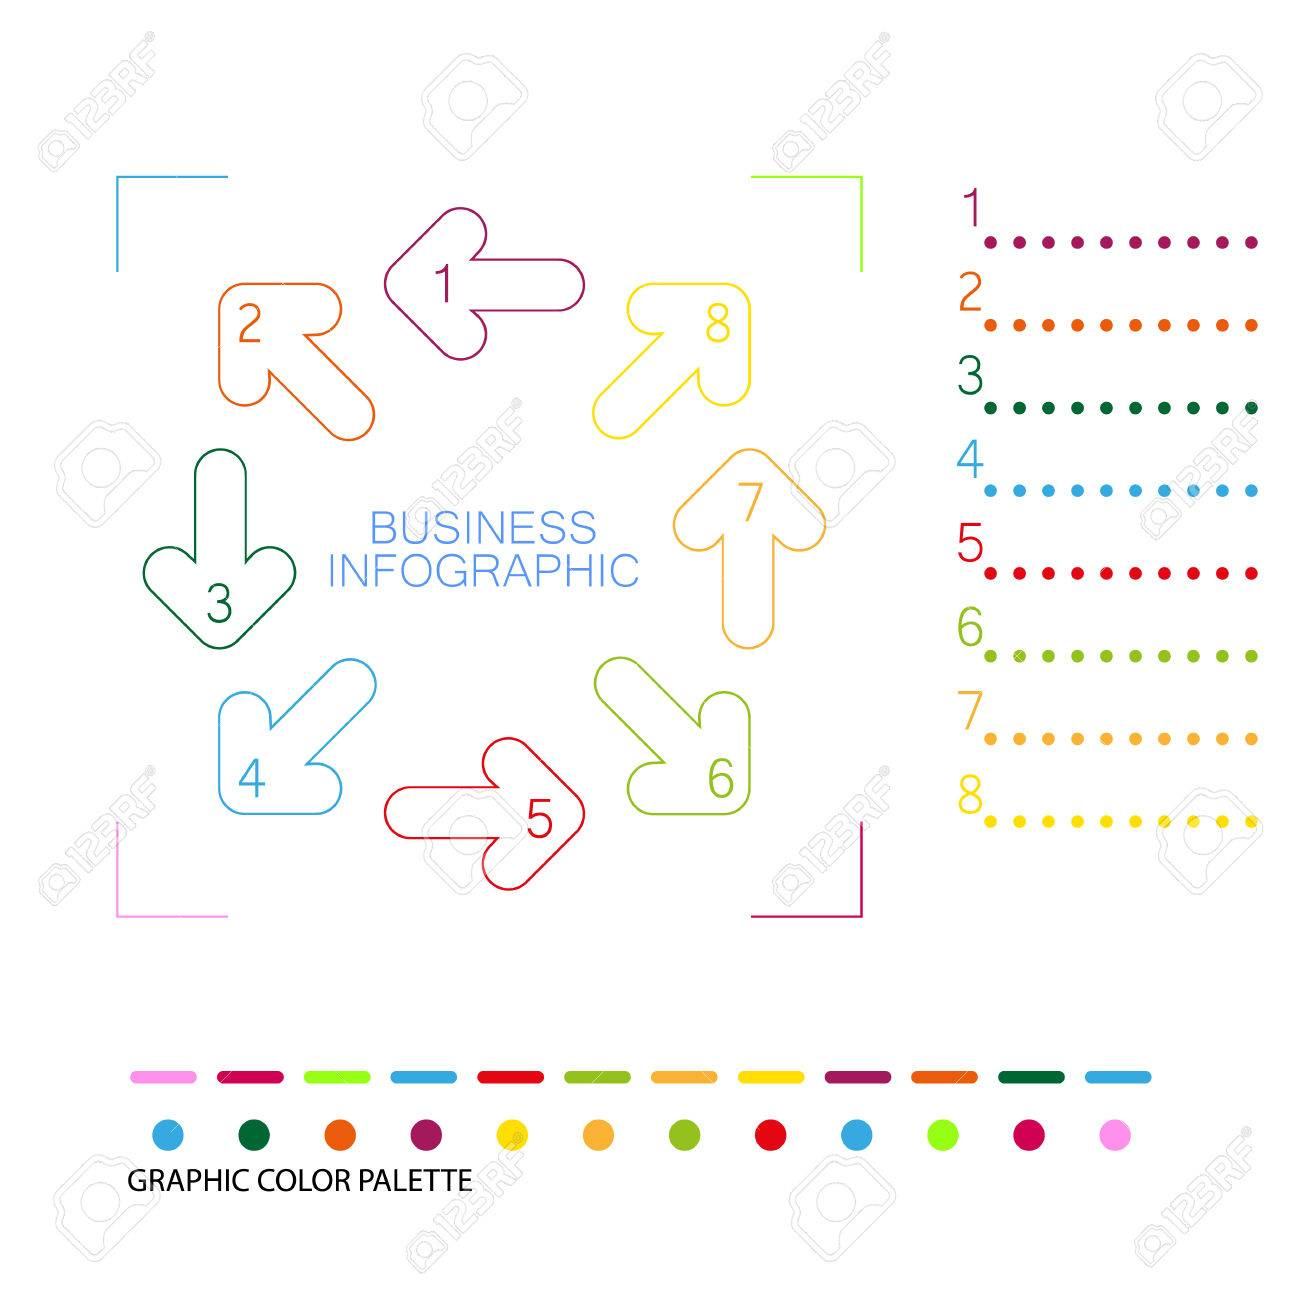 Colorful Info Graphic Template With Color Palette Royalty Free ...